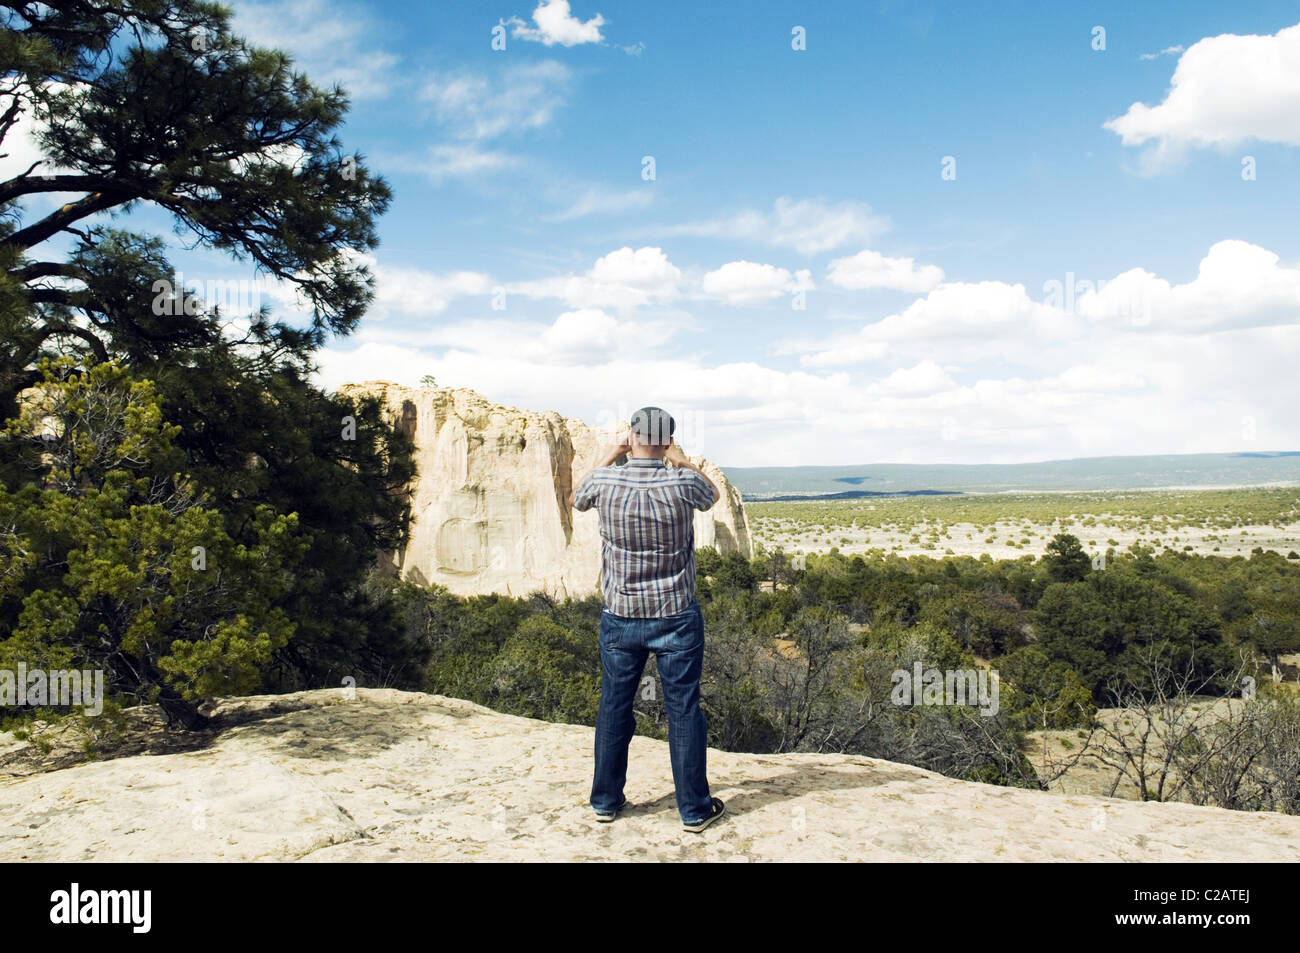 Tourist photographing El Morro National Monument, New Mexico, USA - Stock Image